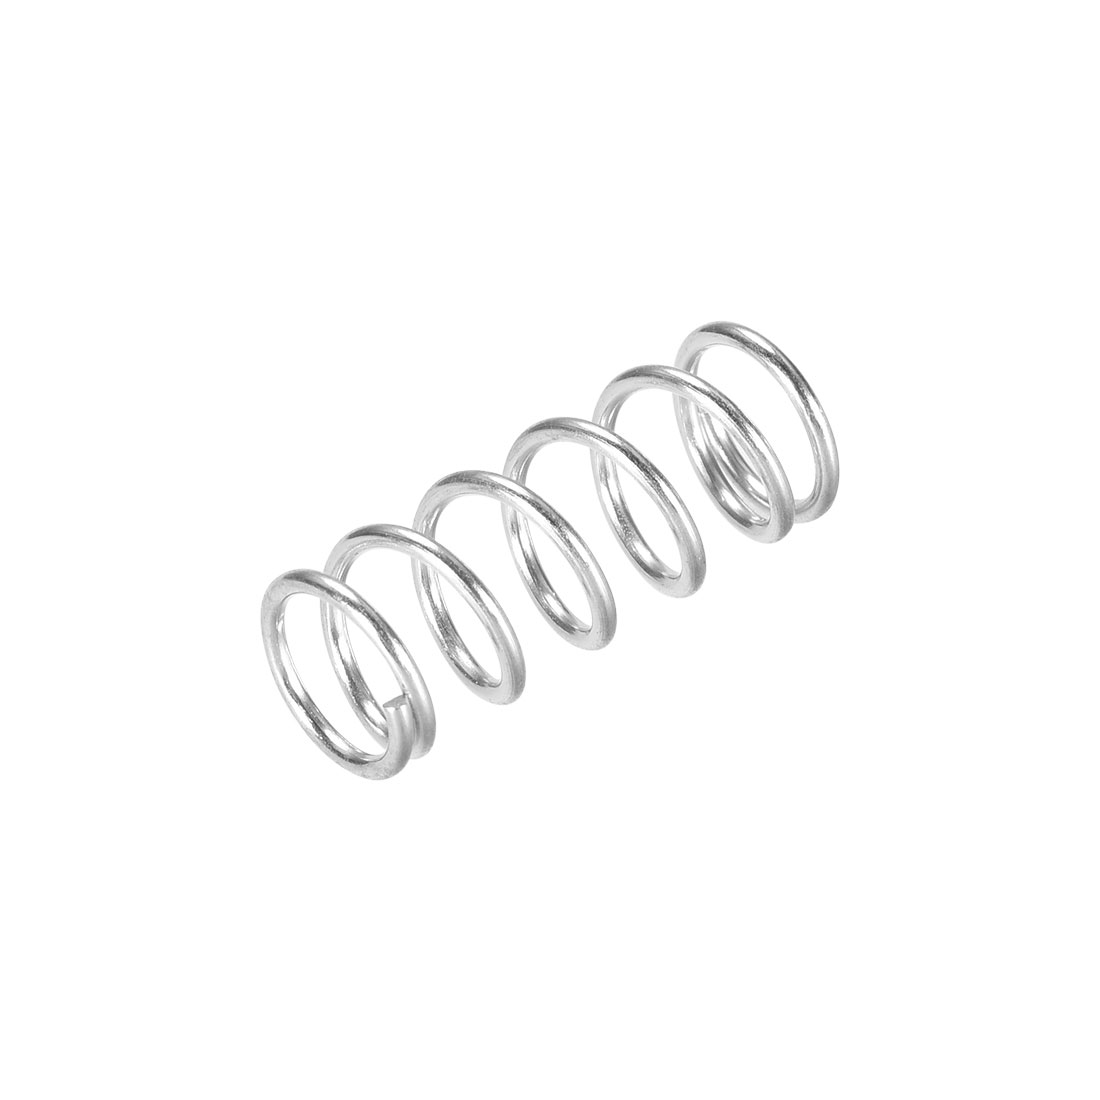 Heated Bed Springs for 3D Printer Extruder Compression Spring, 9 x 22 mm 30pcs